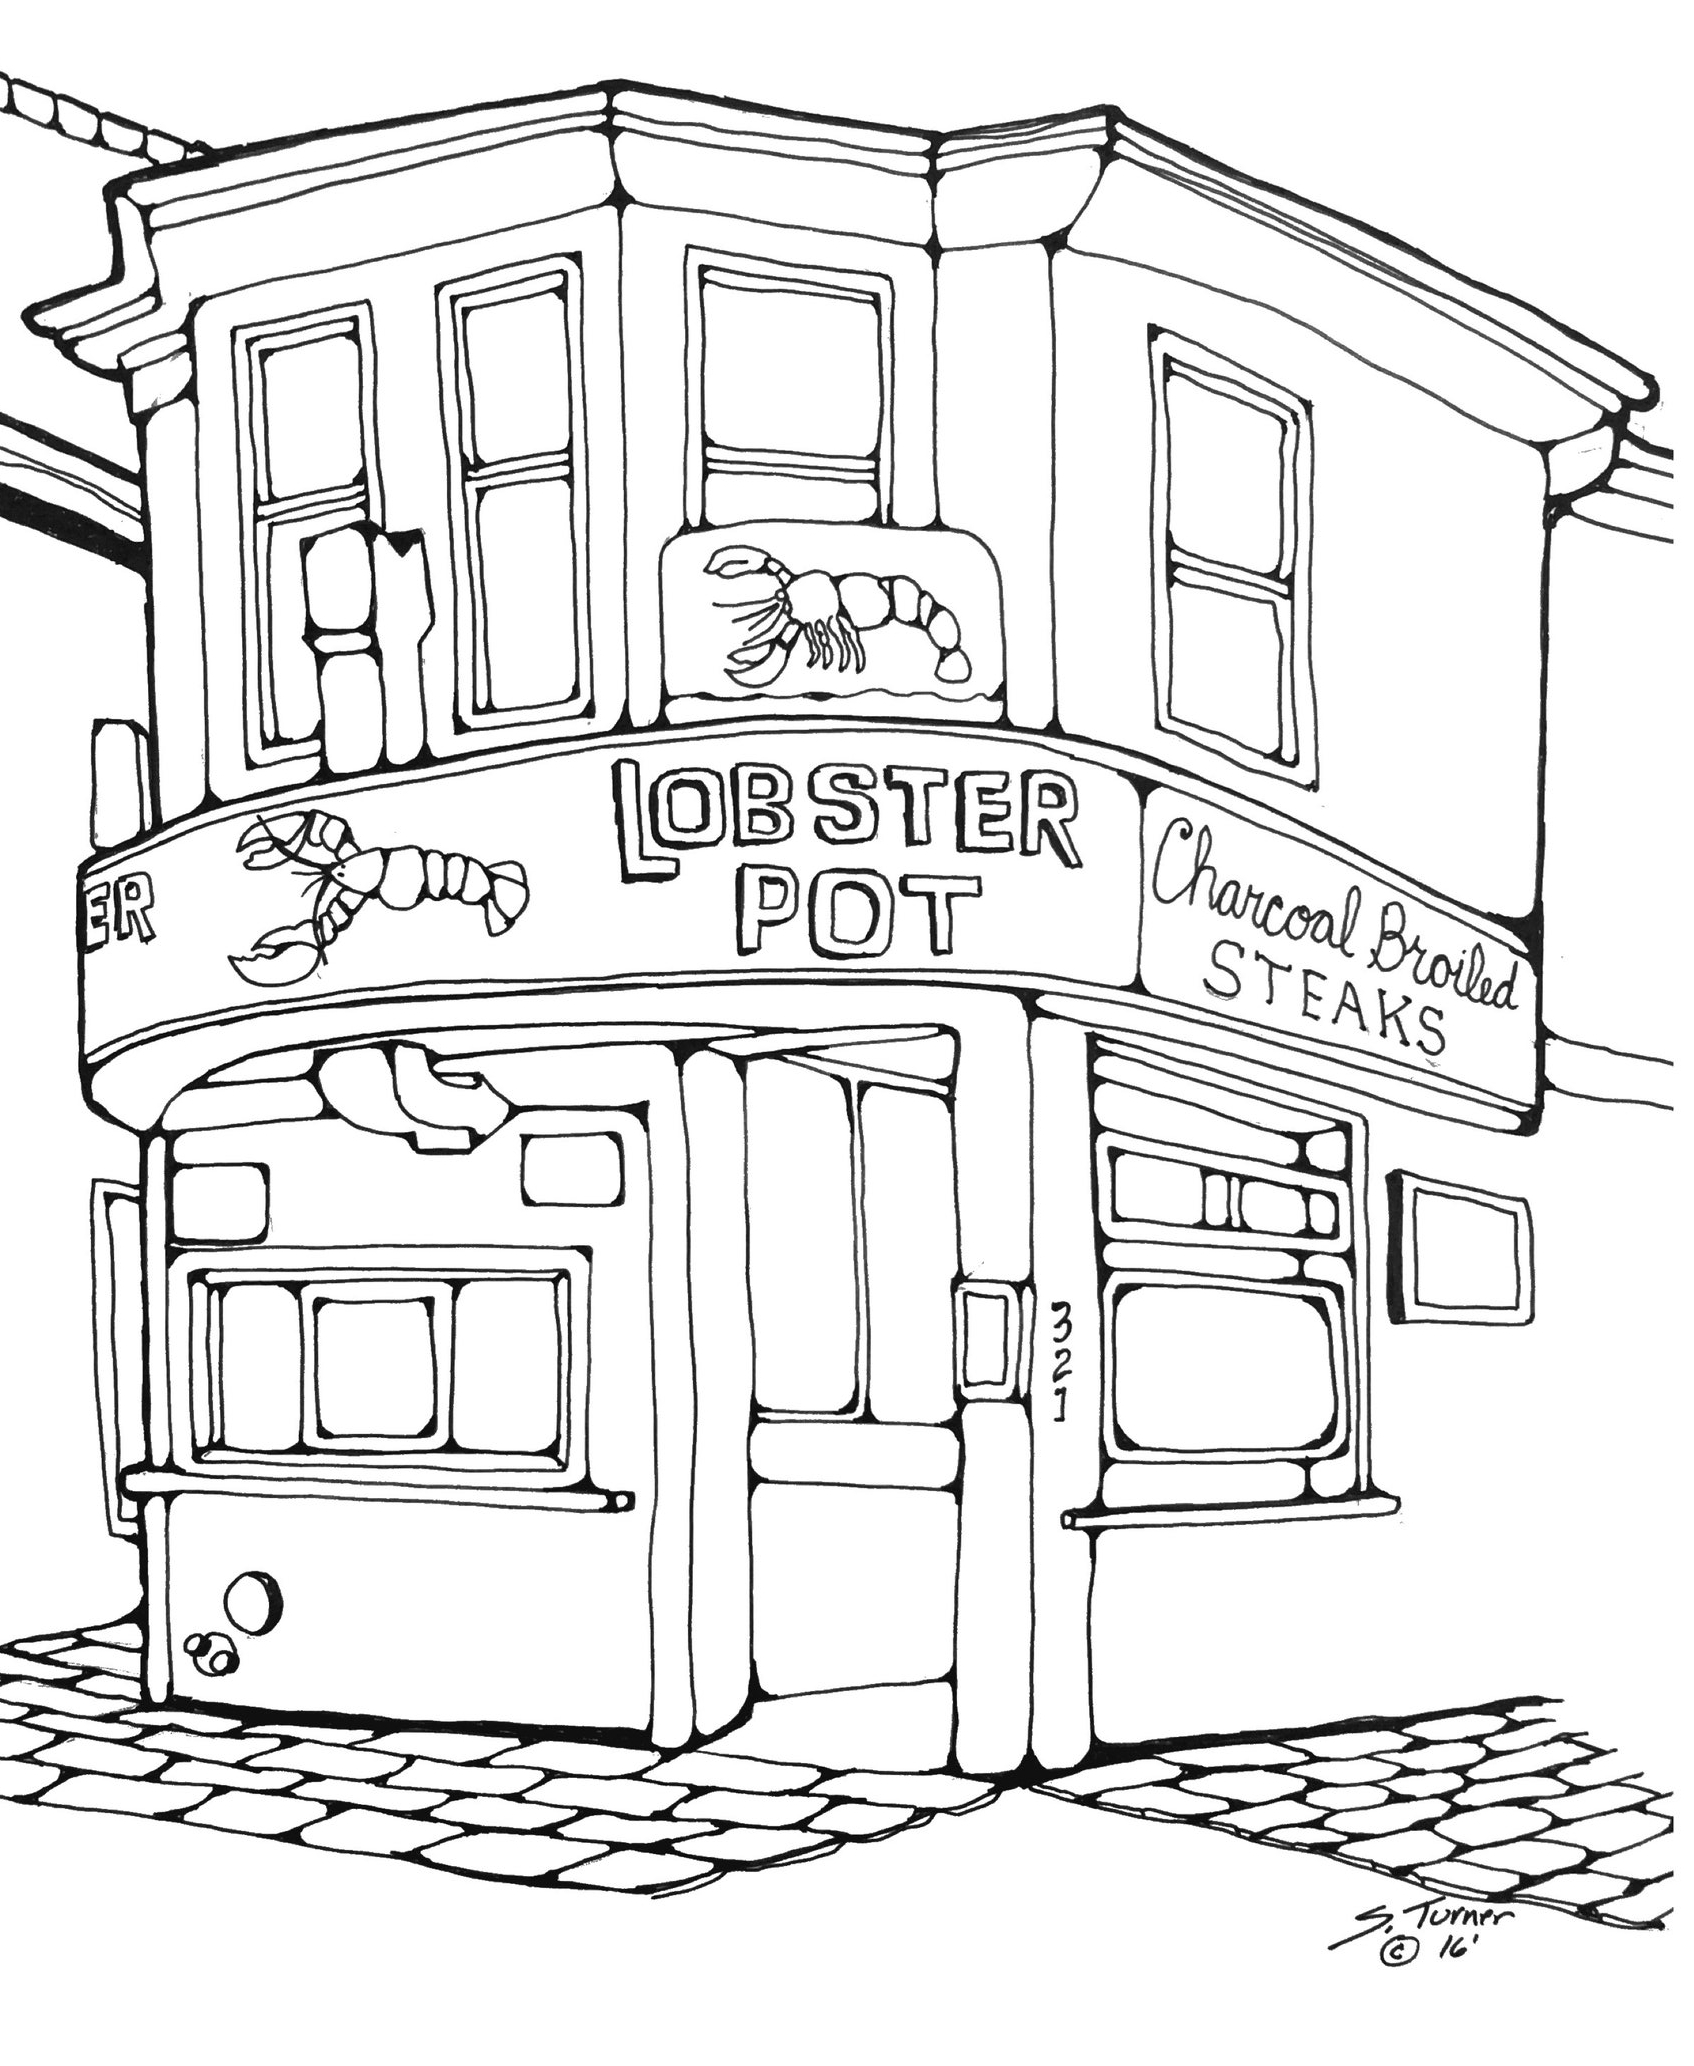 Finished pen & ink of Lobster Pot in Provincetownv